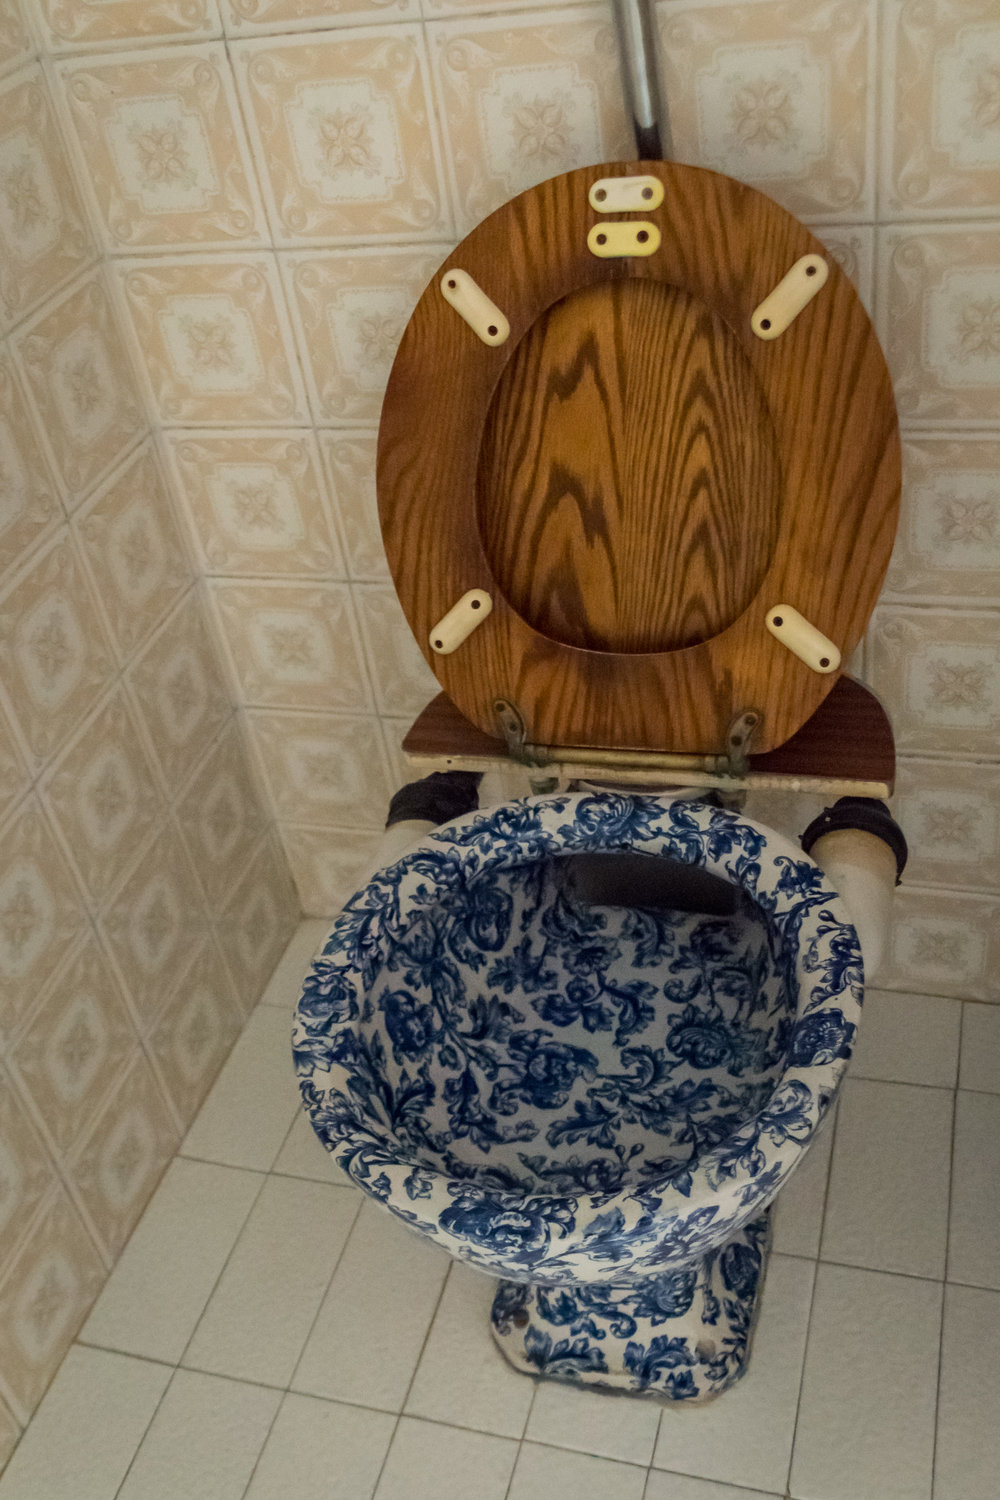 historic porcelain toilet